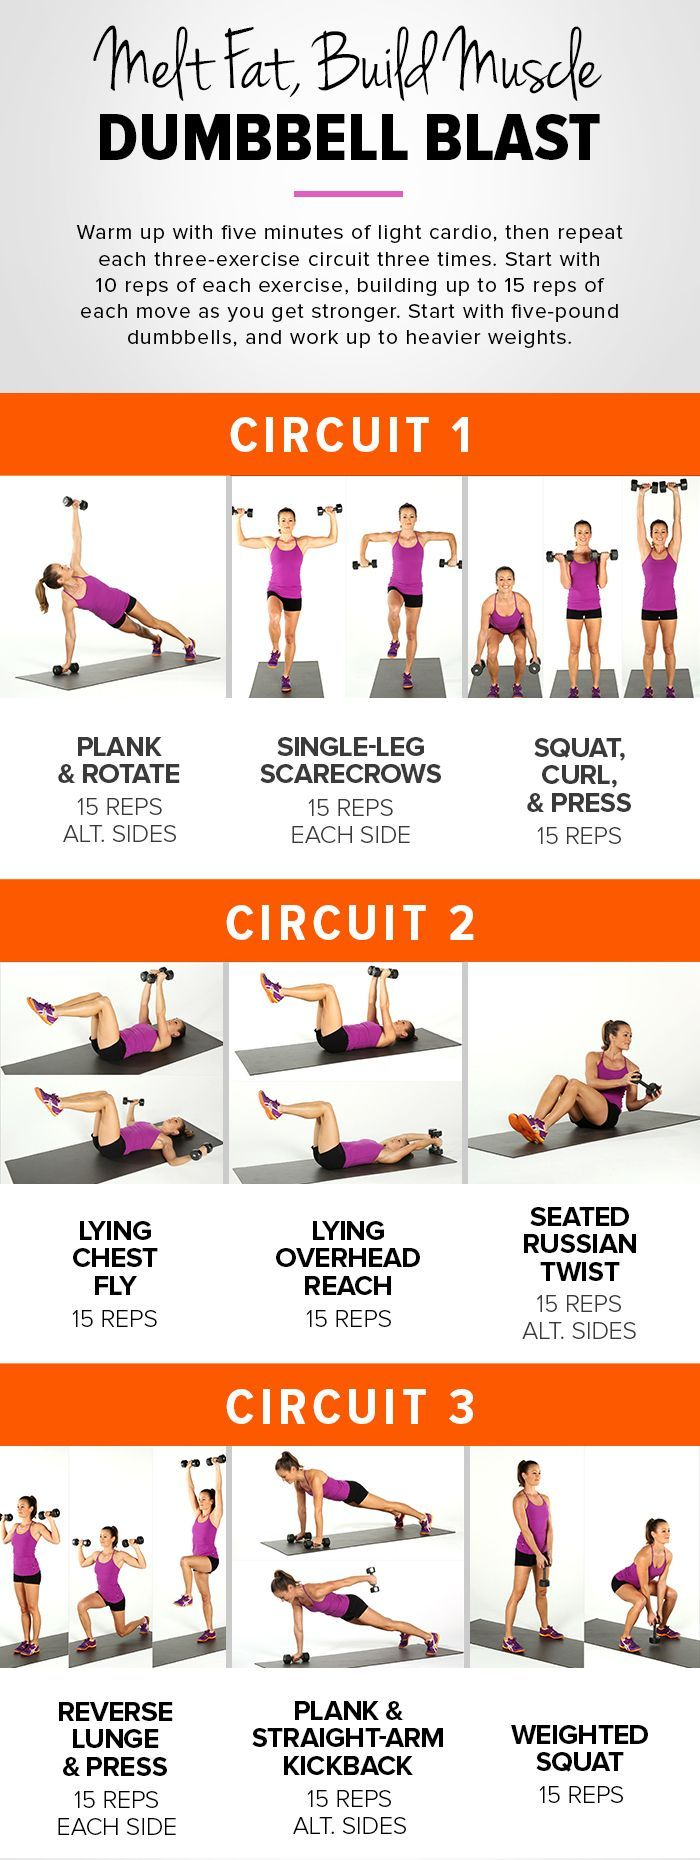 Incinerate Fat and Build Muscle With This Workout